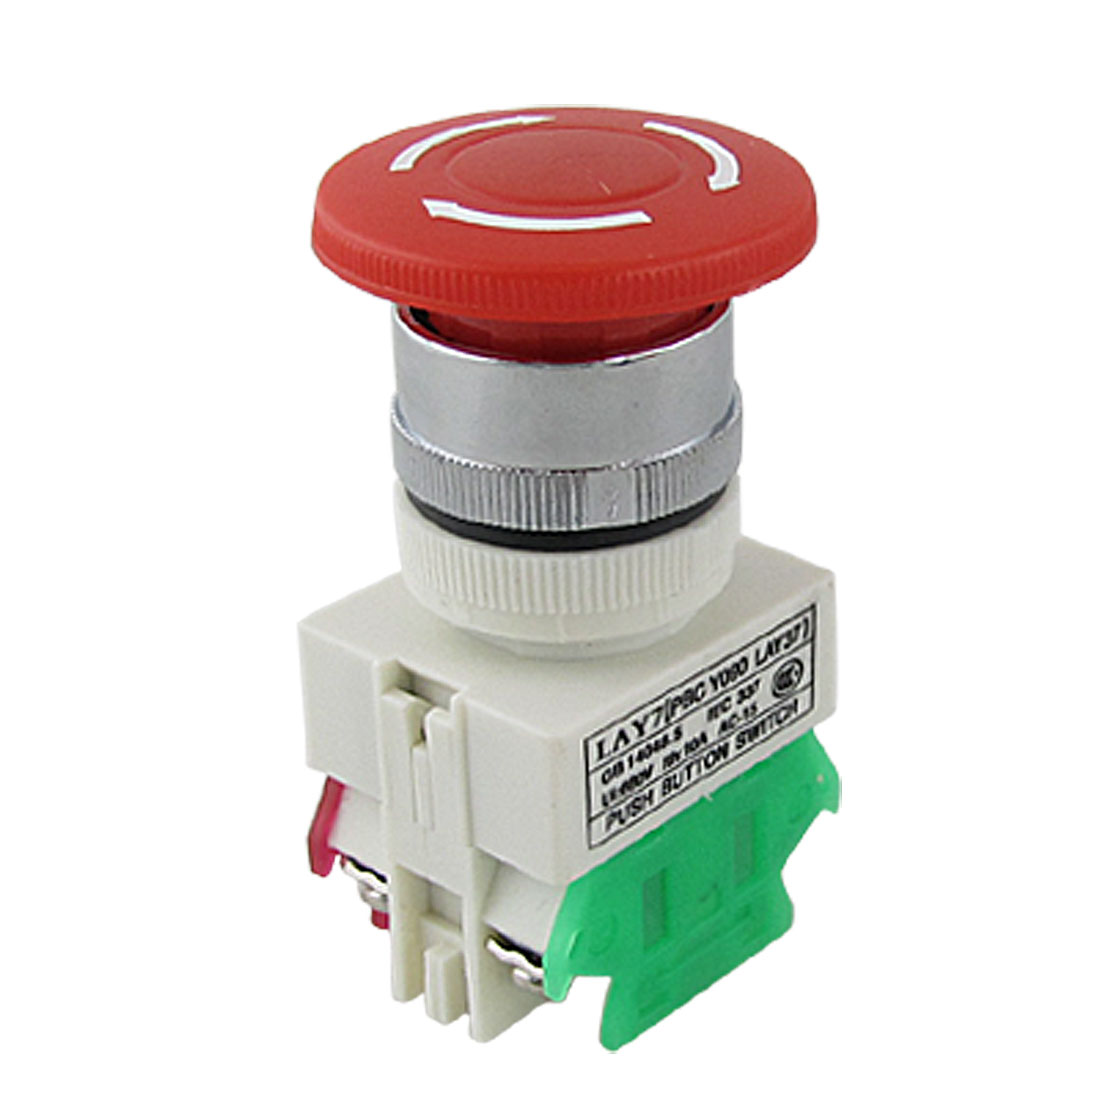 Self Locking Rotary Stop Emergency Push Button Switch 660V 10A